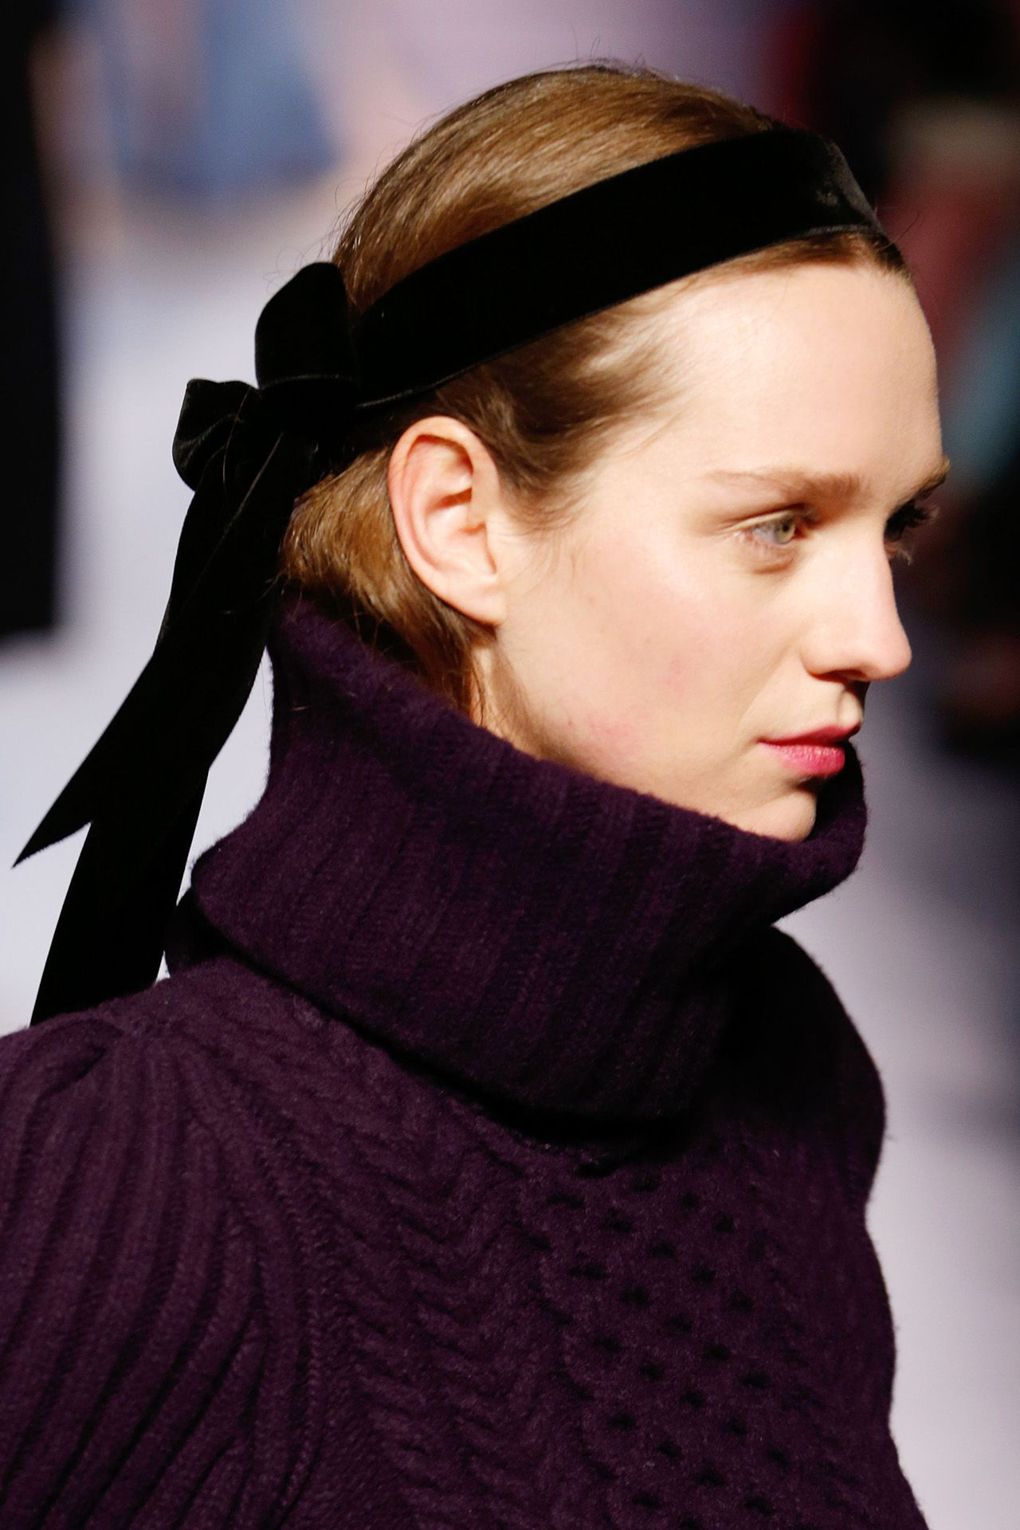 The City: London The Show: Temperley London The Look: Hair ribbon